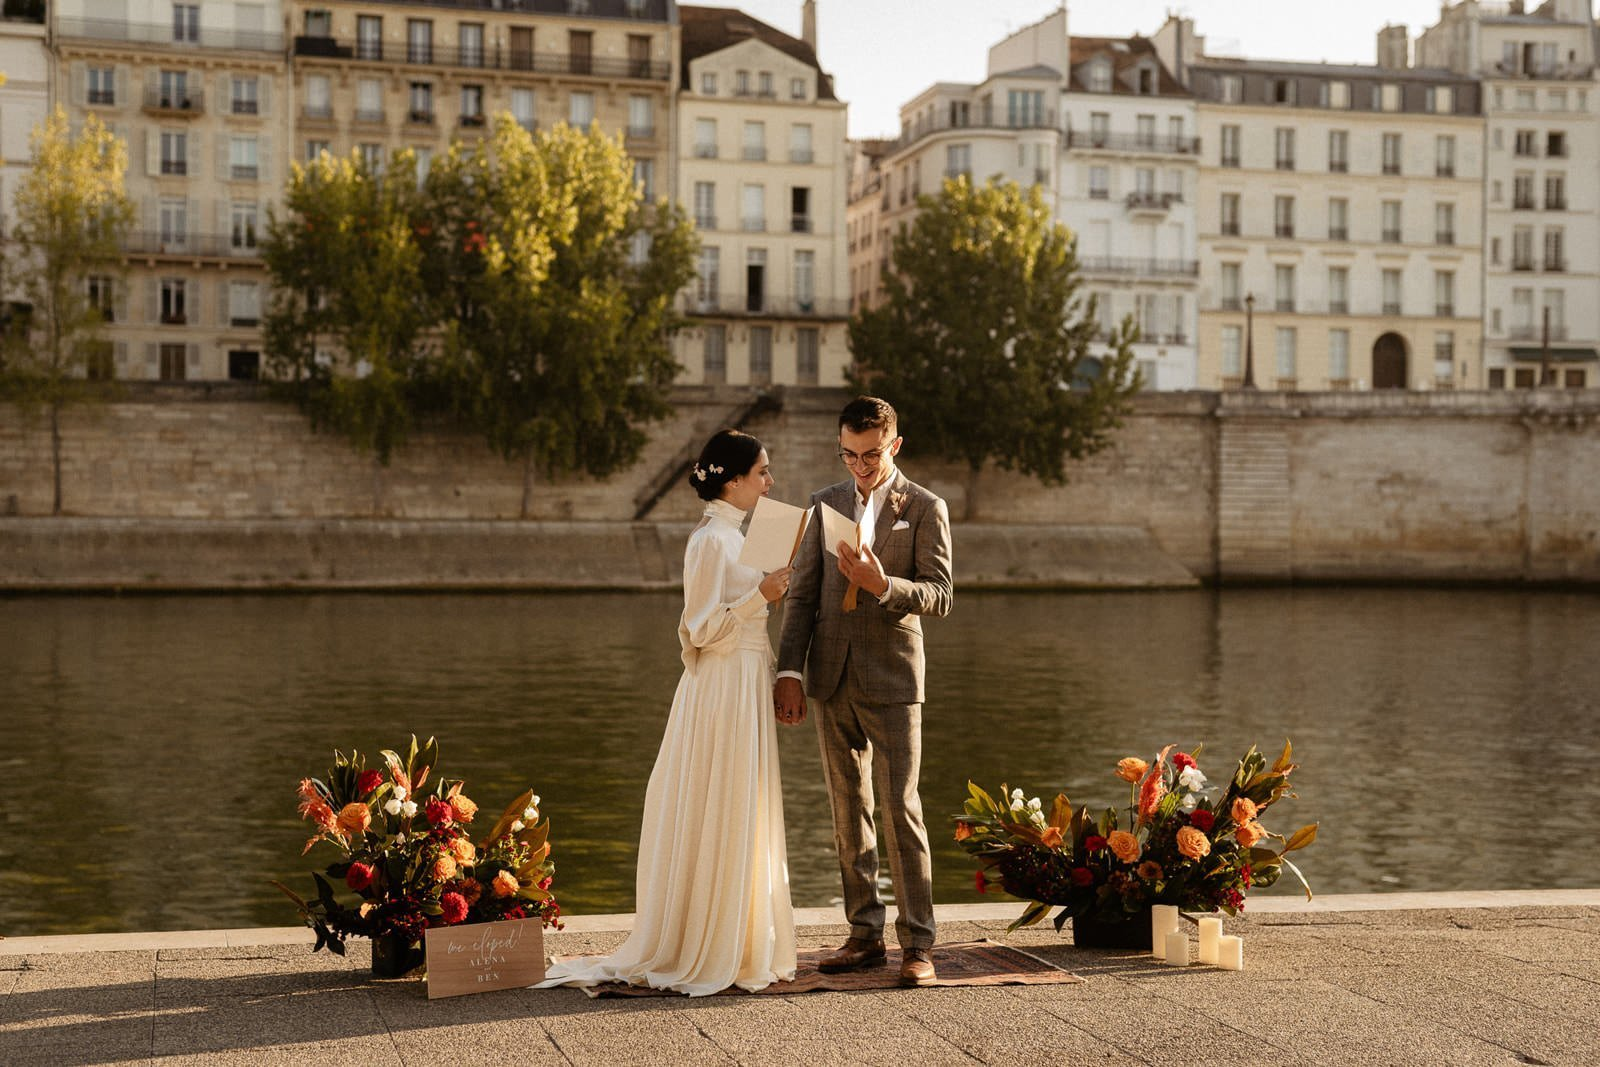 reading personal vows to each other during elopement by Seine River in Paris, France